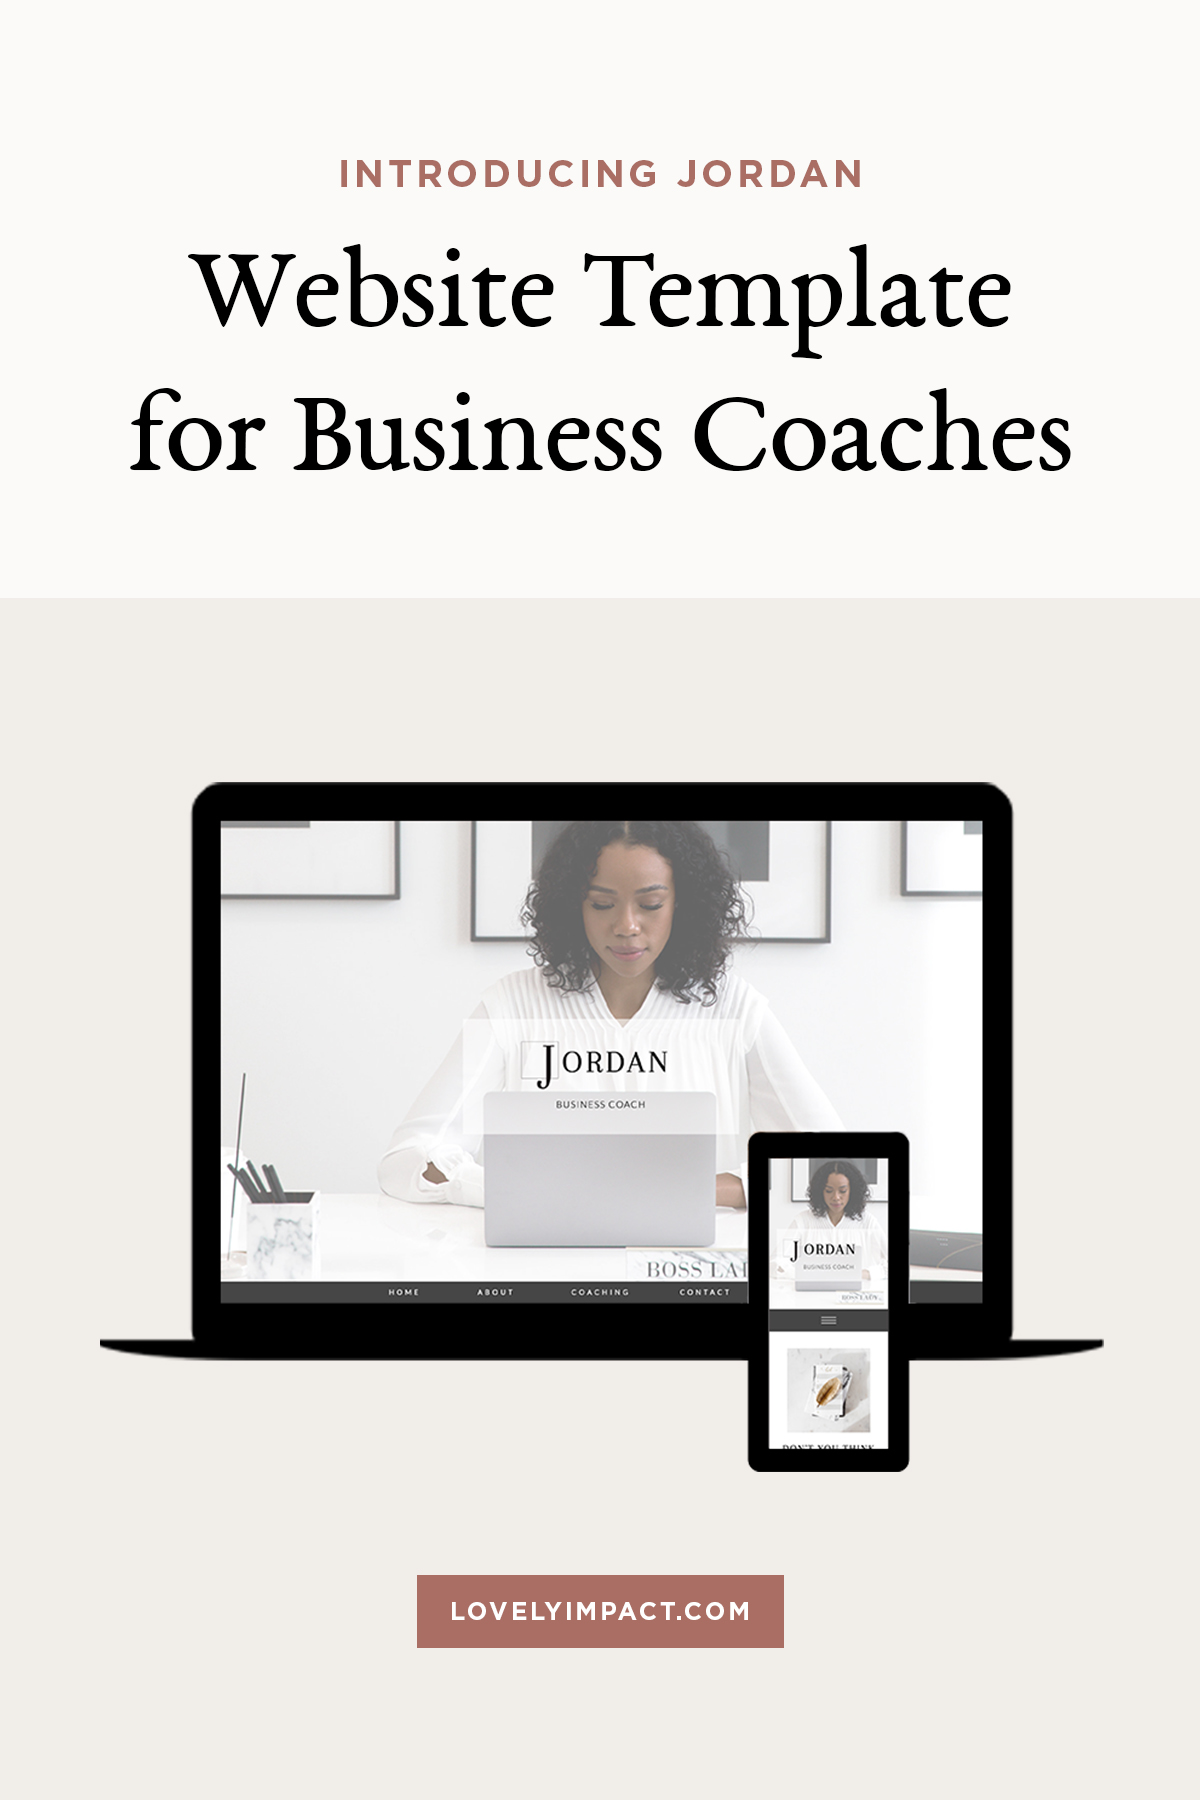 Introducing Jordan! A Showit Website Template for Business Coaches